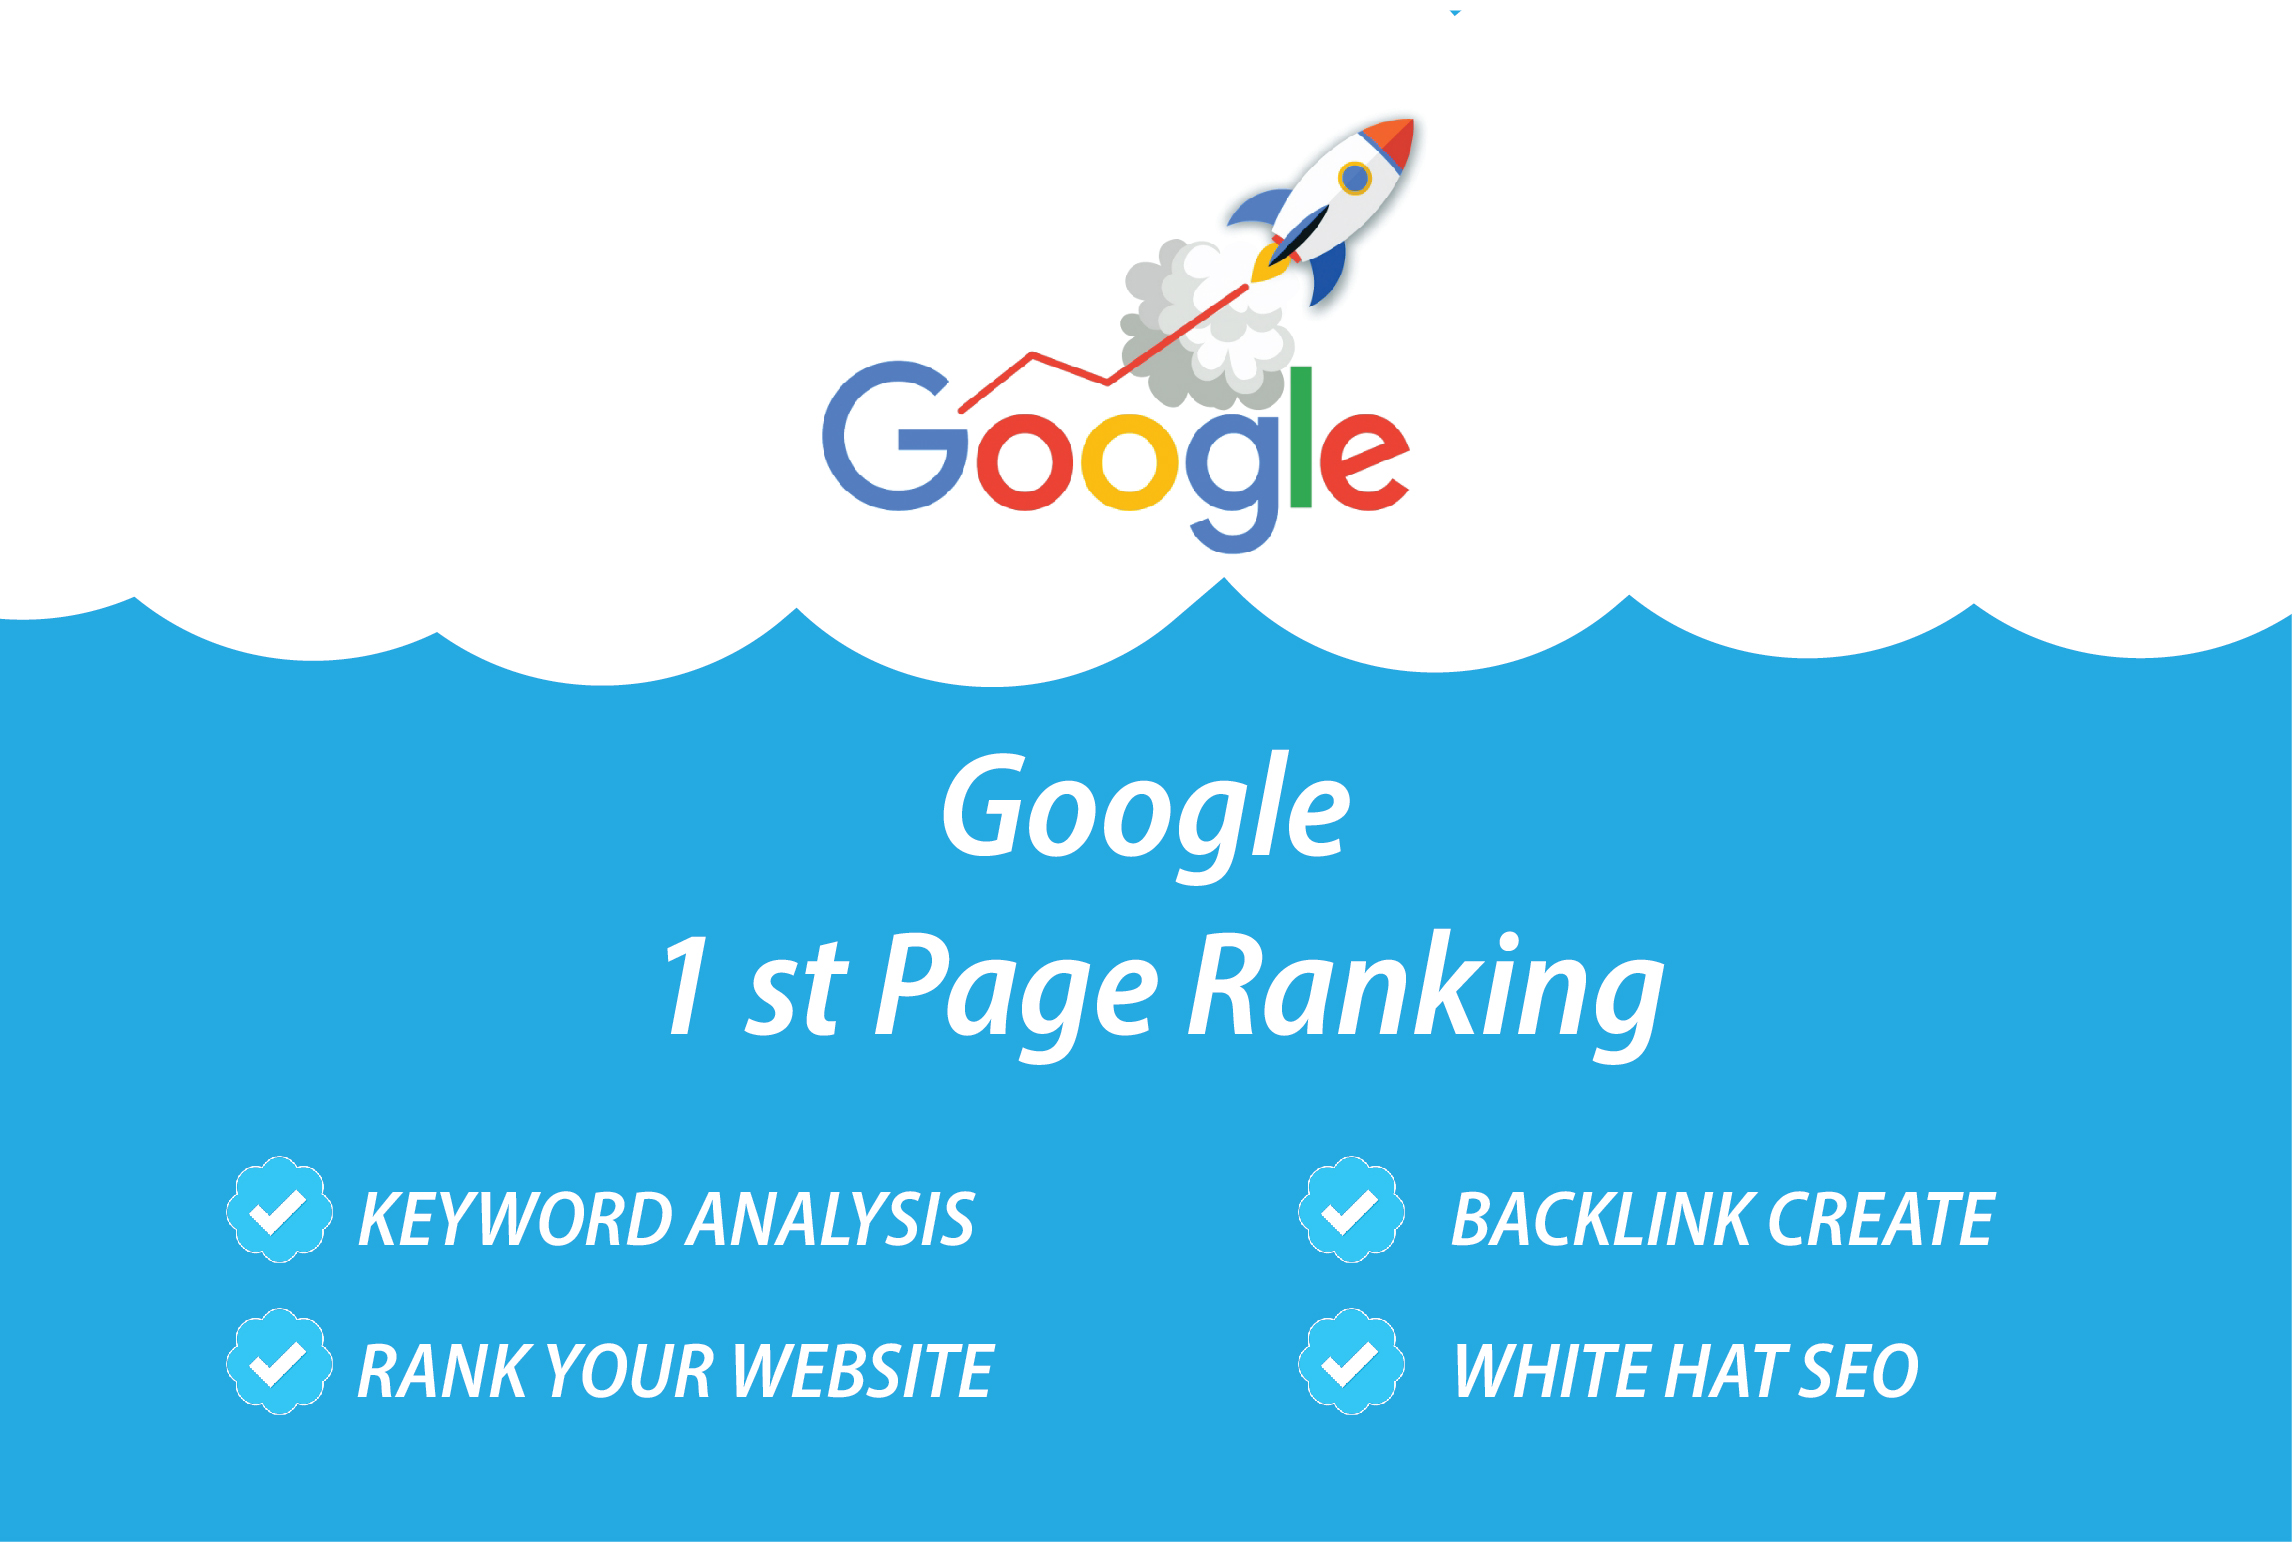 Guaranteed rank your website on Google top ranking